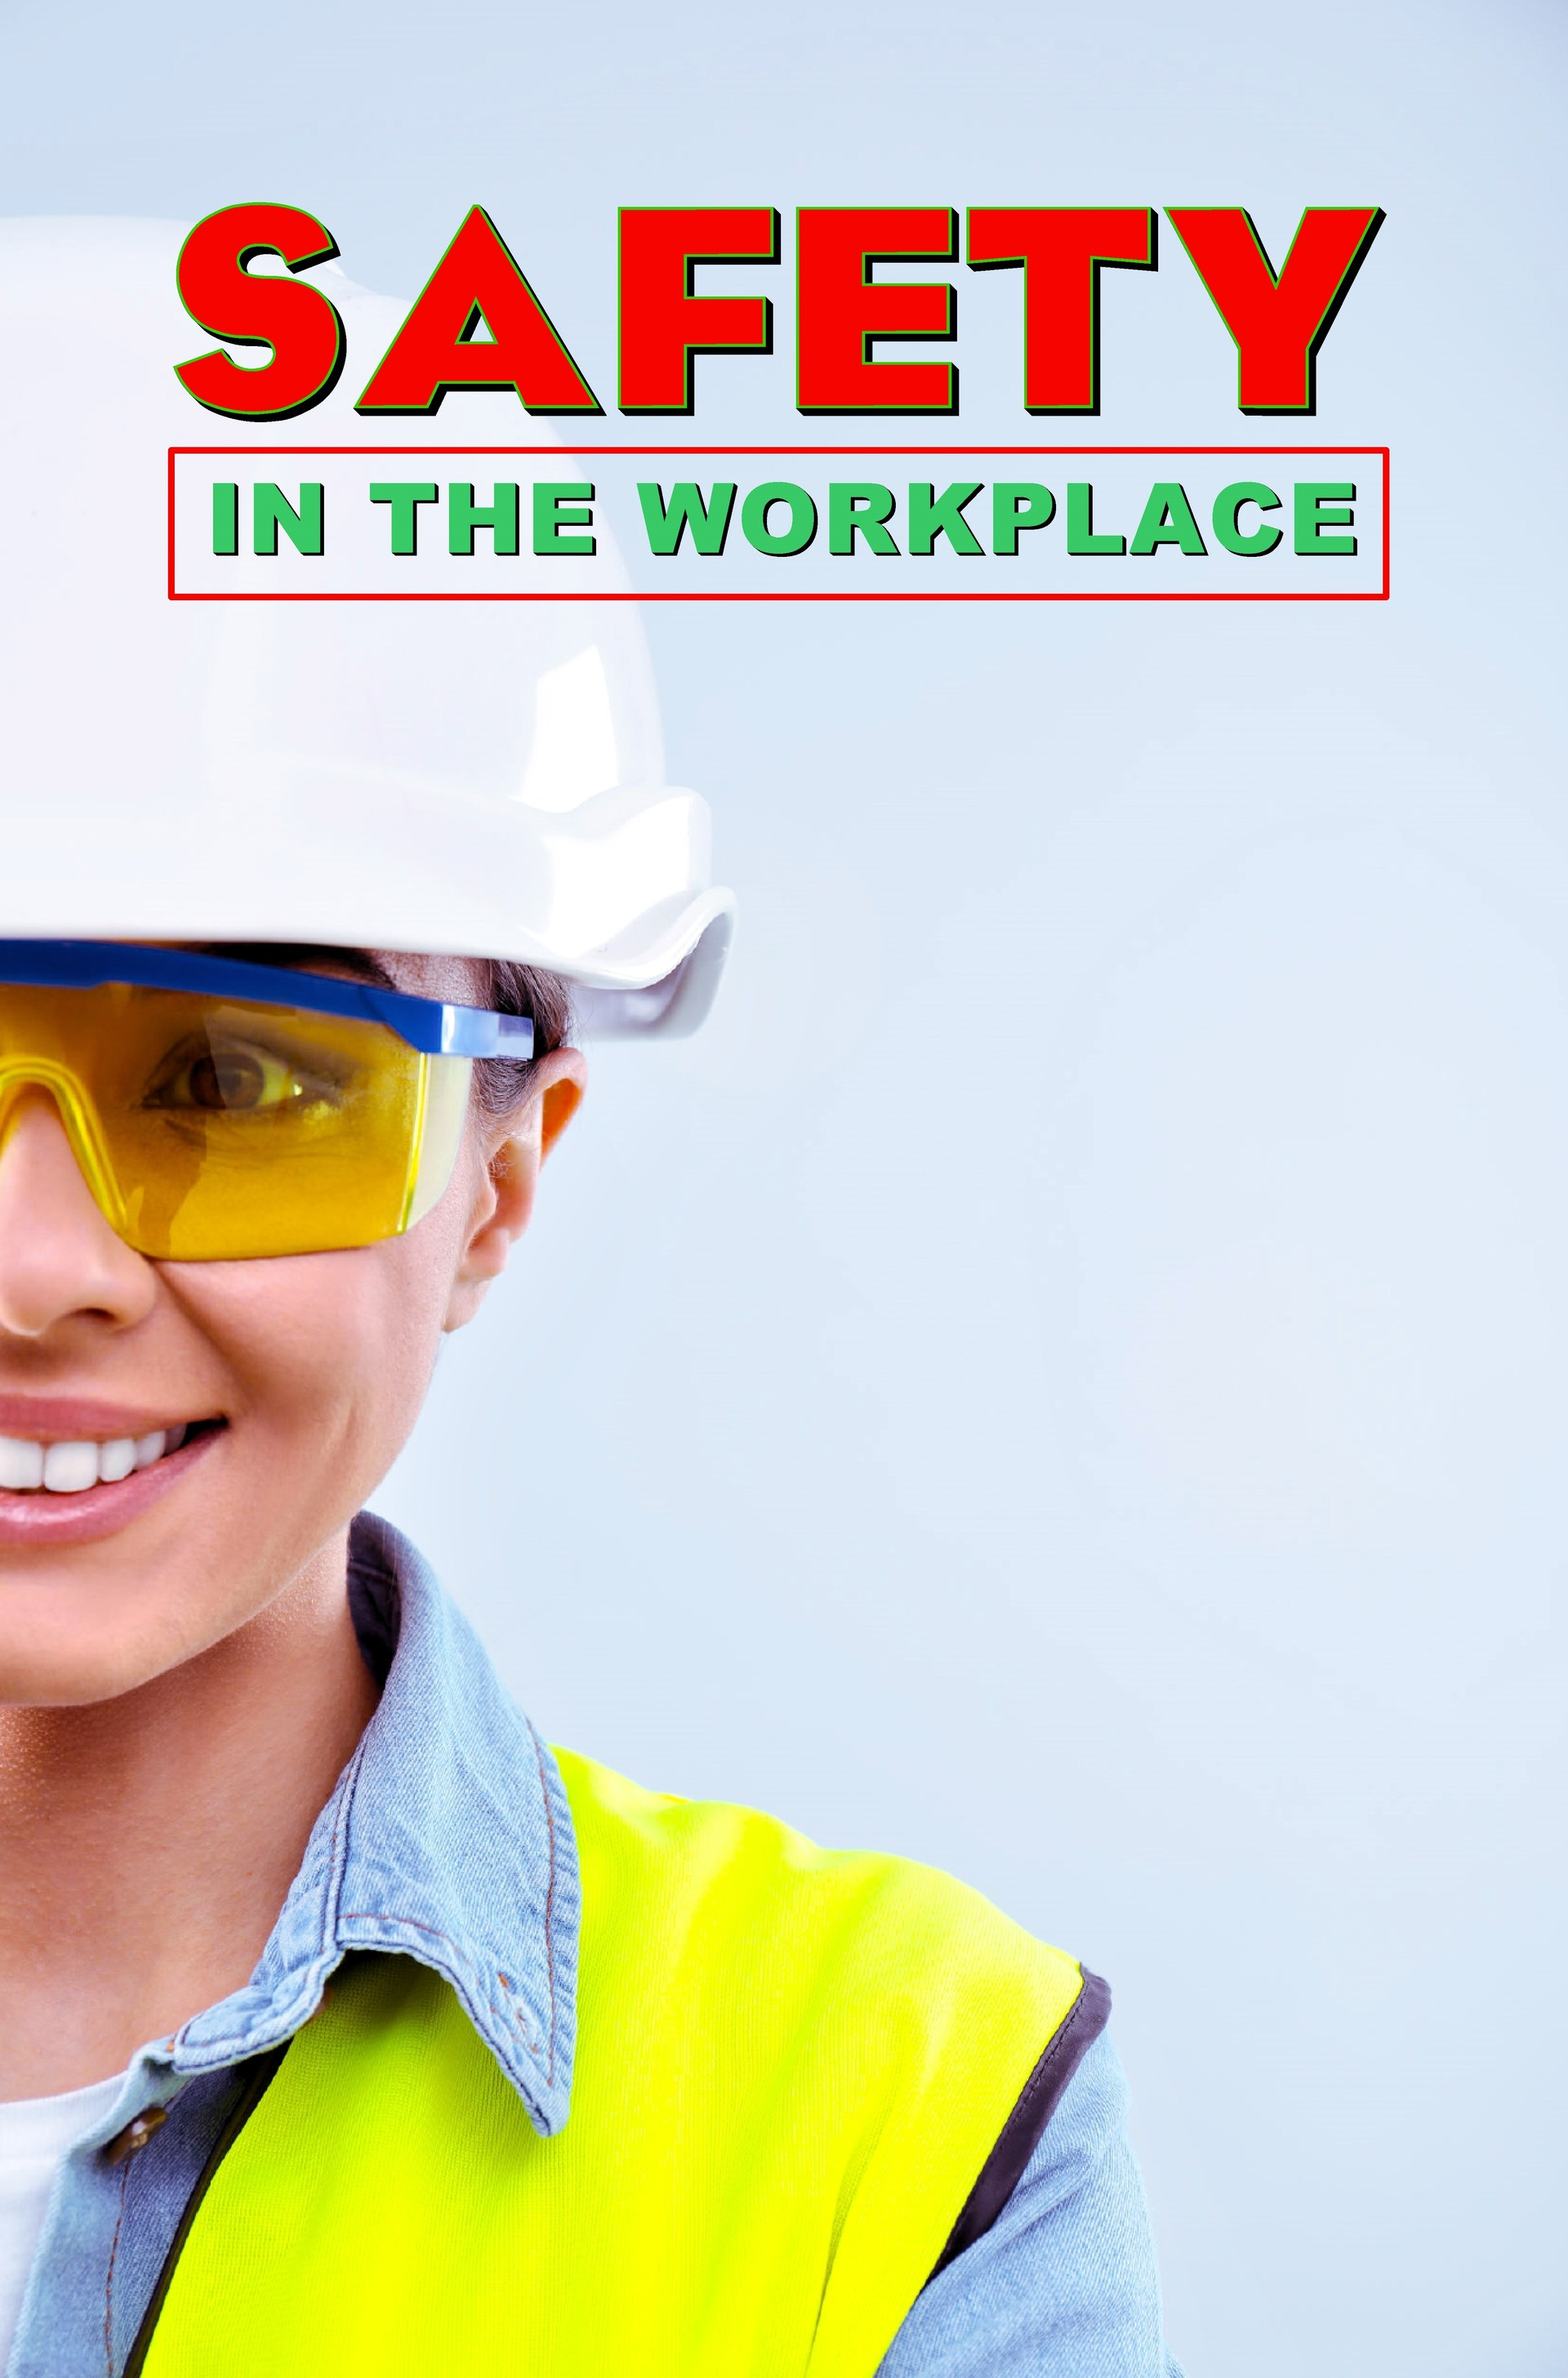 L7044 - Safety in the Workplace